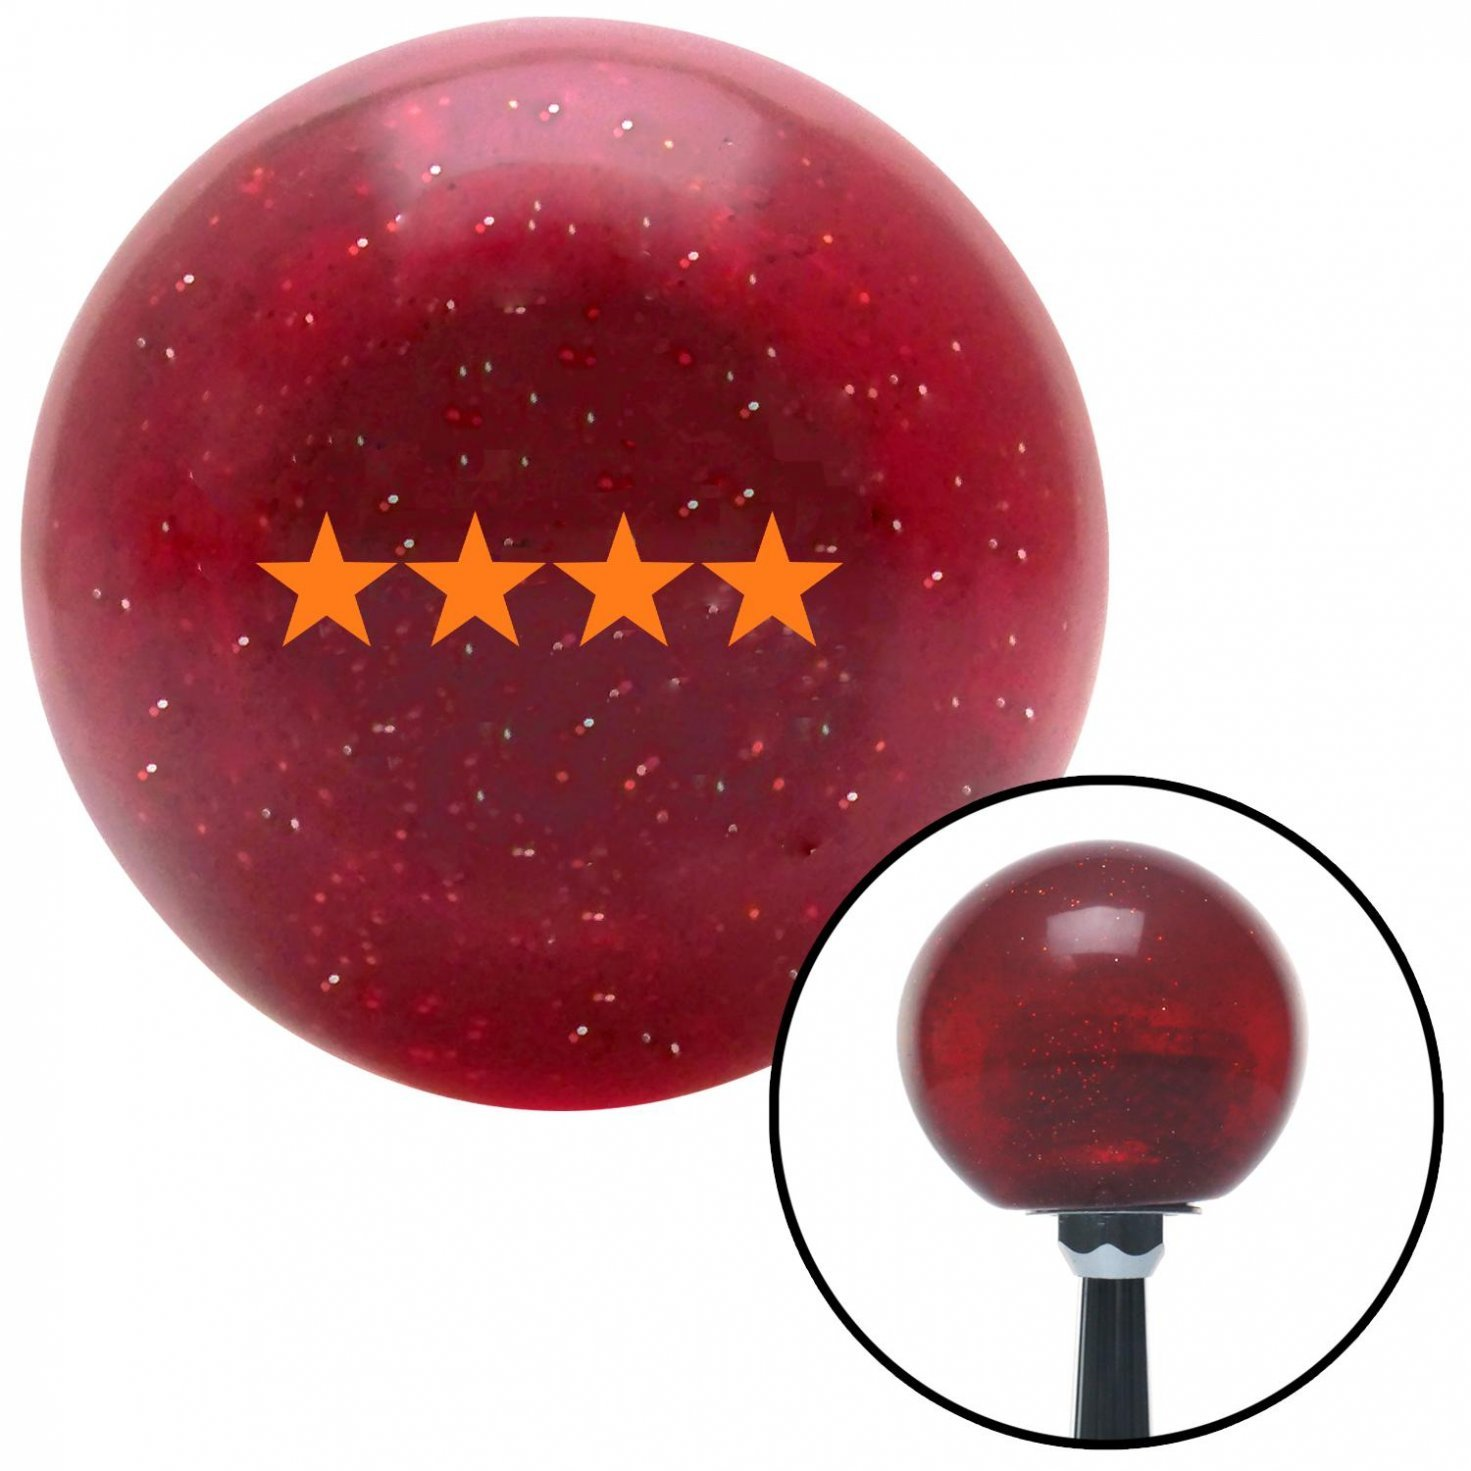 Orange Officer 10 - General American Shifter 58396 Red Metal Flake Shift Knob with 16mm x 1.5 Insert